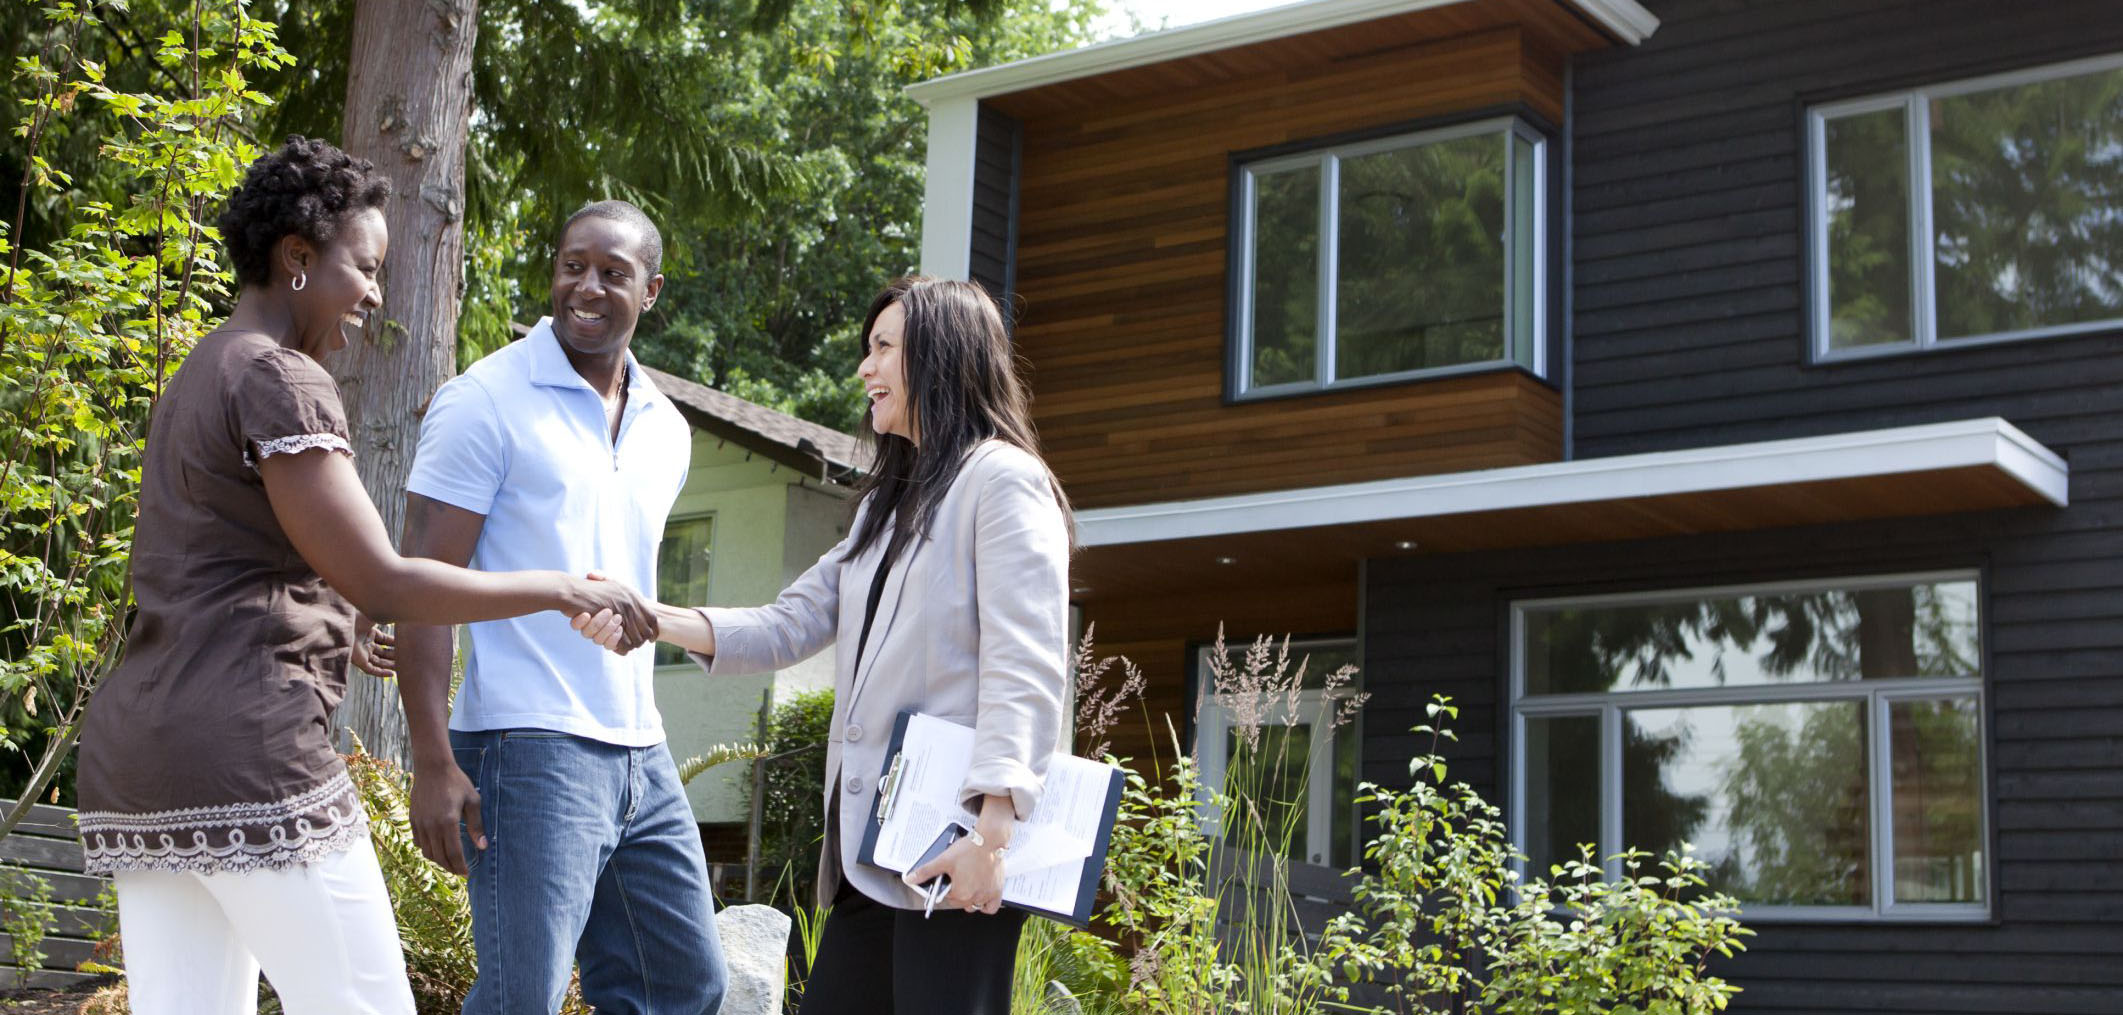 Top 5 Things to Pay Attention to When Purchasing a Home